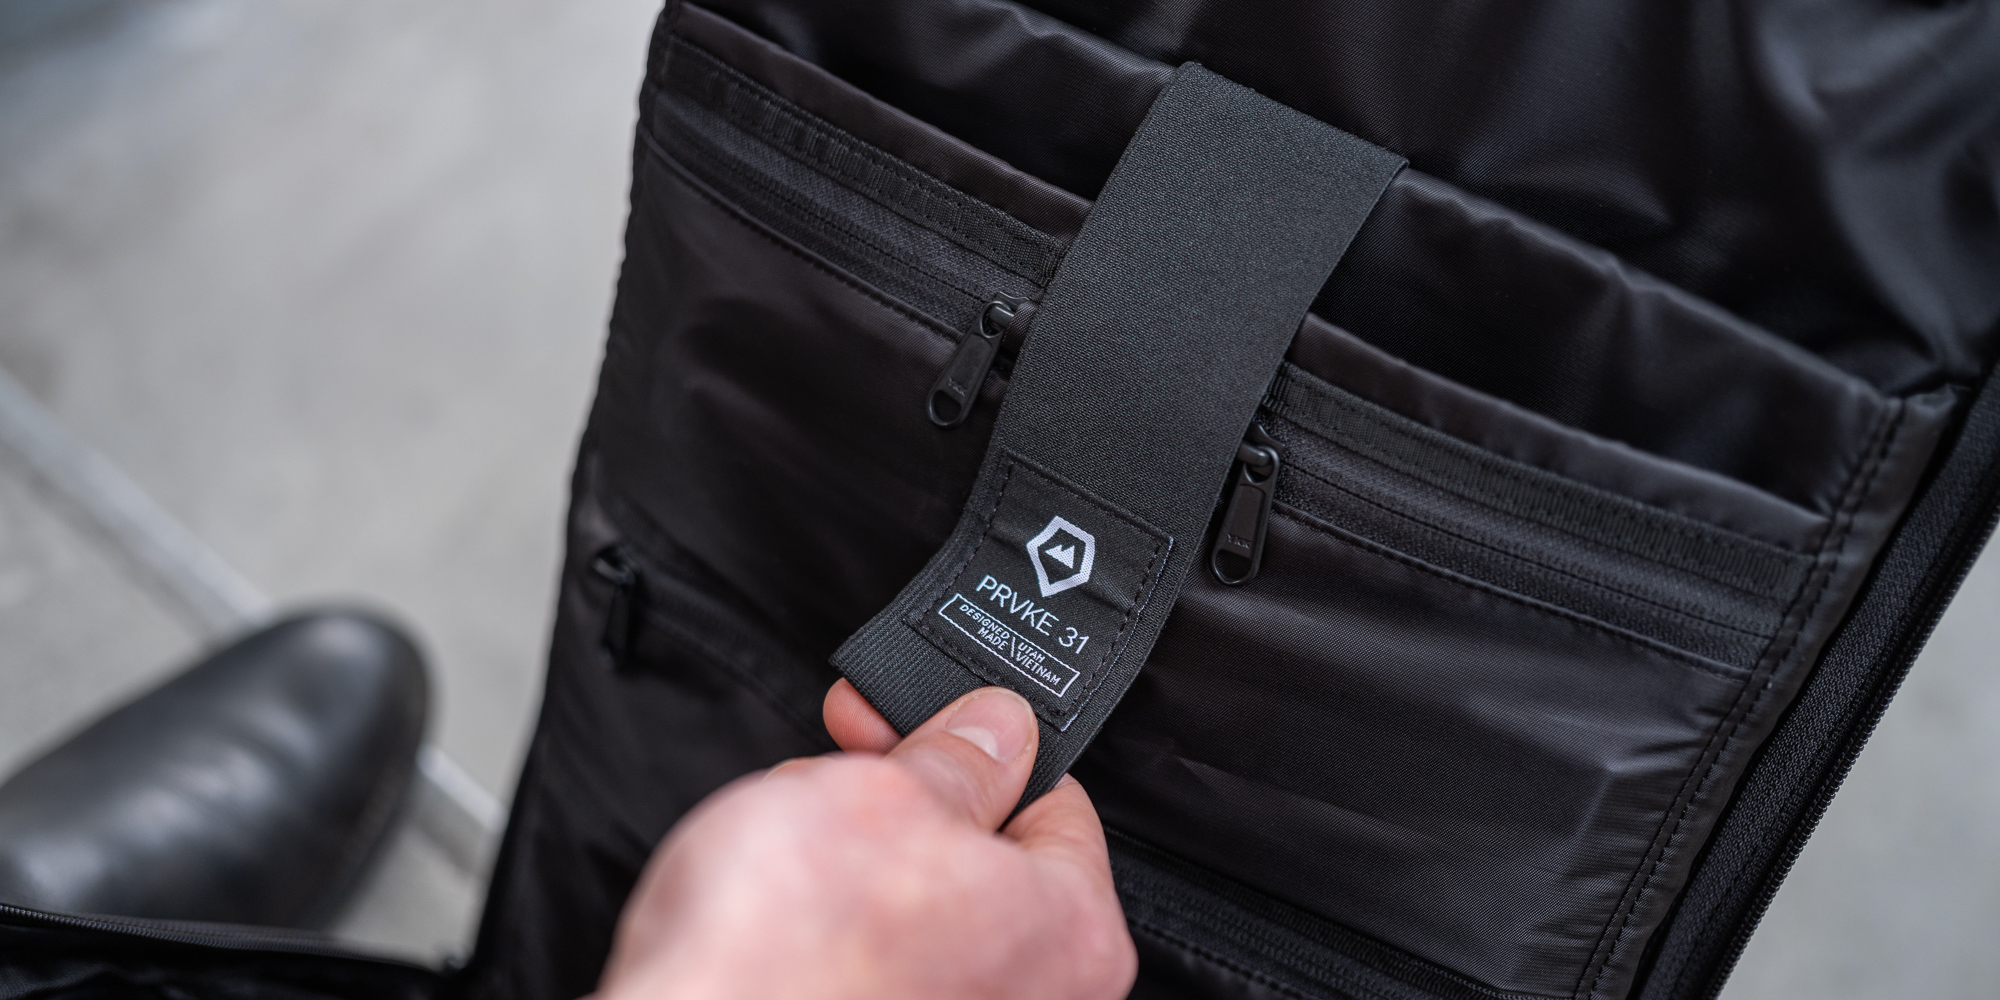 Wandrd All-new Prvke 21 Backpack - Tailored to Your Needs